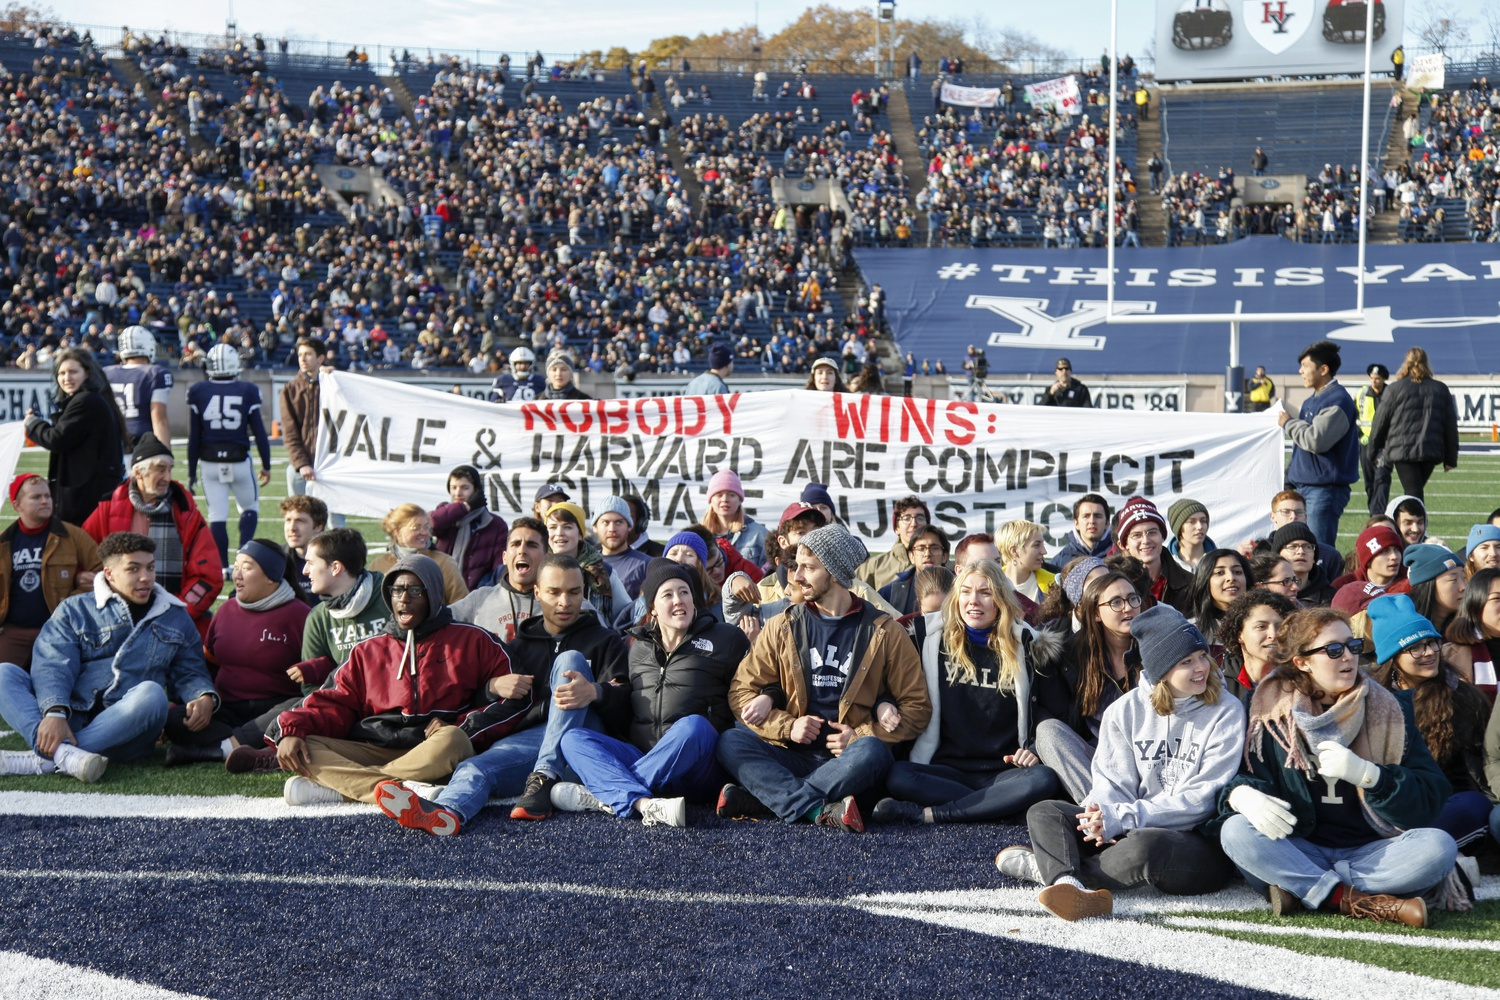 Forty-two protesters were arrested at the demonstration during the Harvard-Yale game Saturday. Hundreds of people participated in the protest, which called on Harvard and Yale to divest their endowments from fossil fuels and Puerto Rican debt.